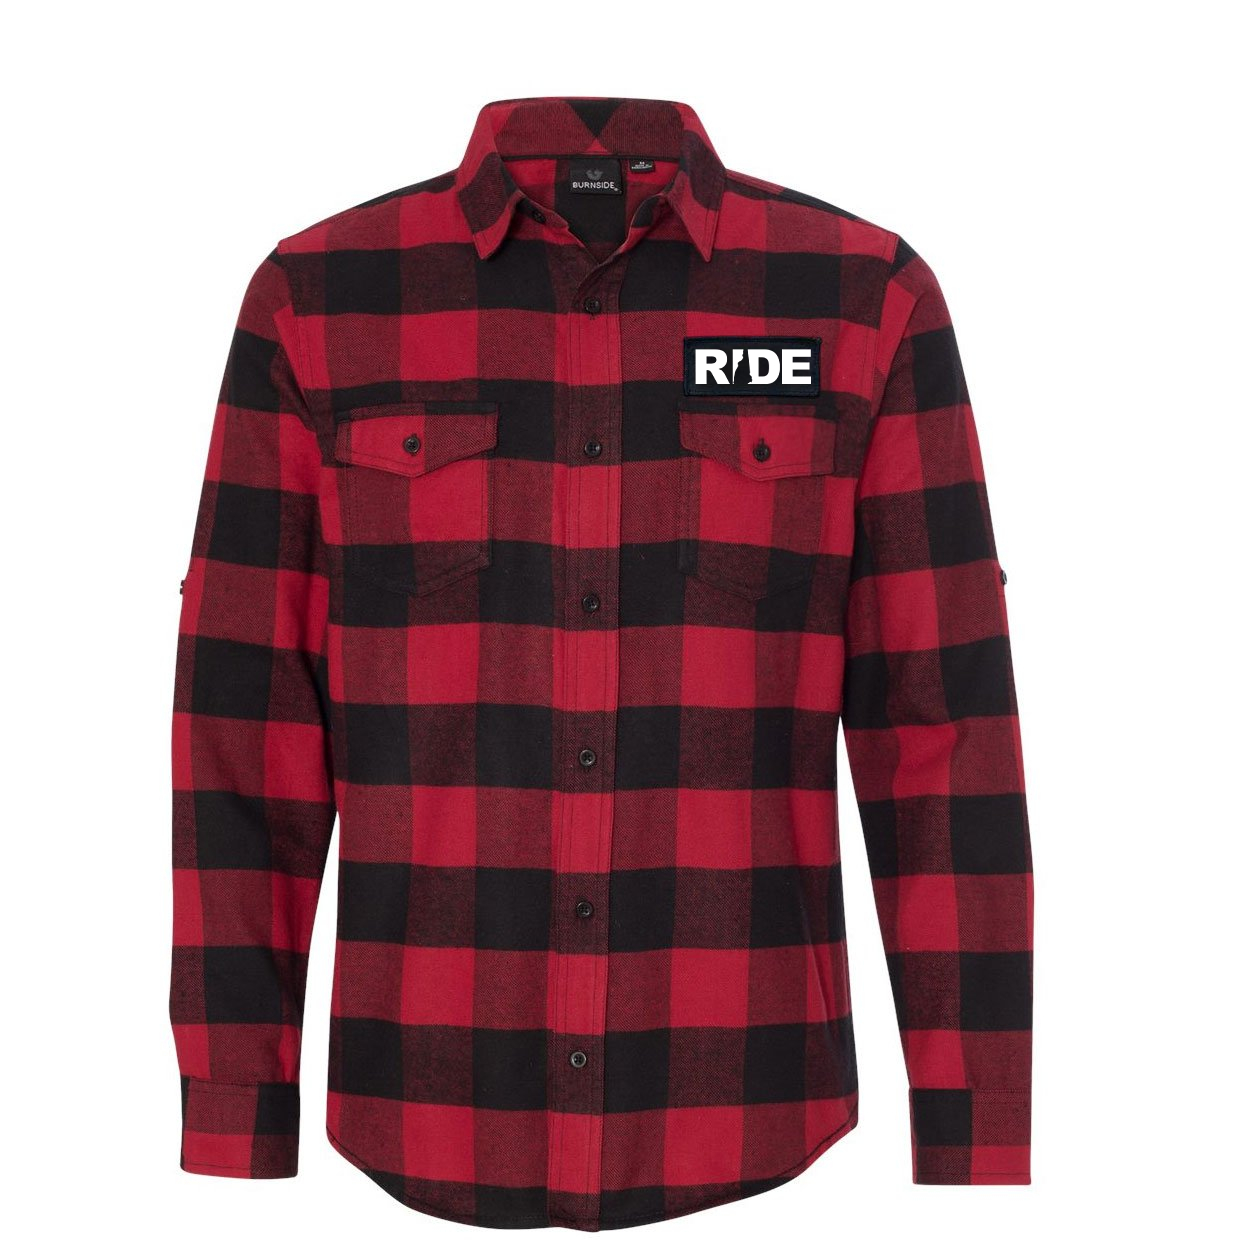 Ride New Hampshire Classic Unisex Long Sleeve Woven Patch Flannel Shirt Red/Black Buffalo (White Logo)